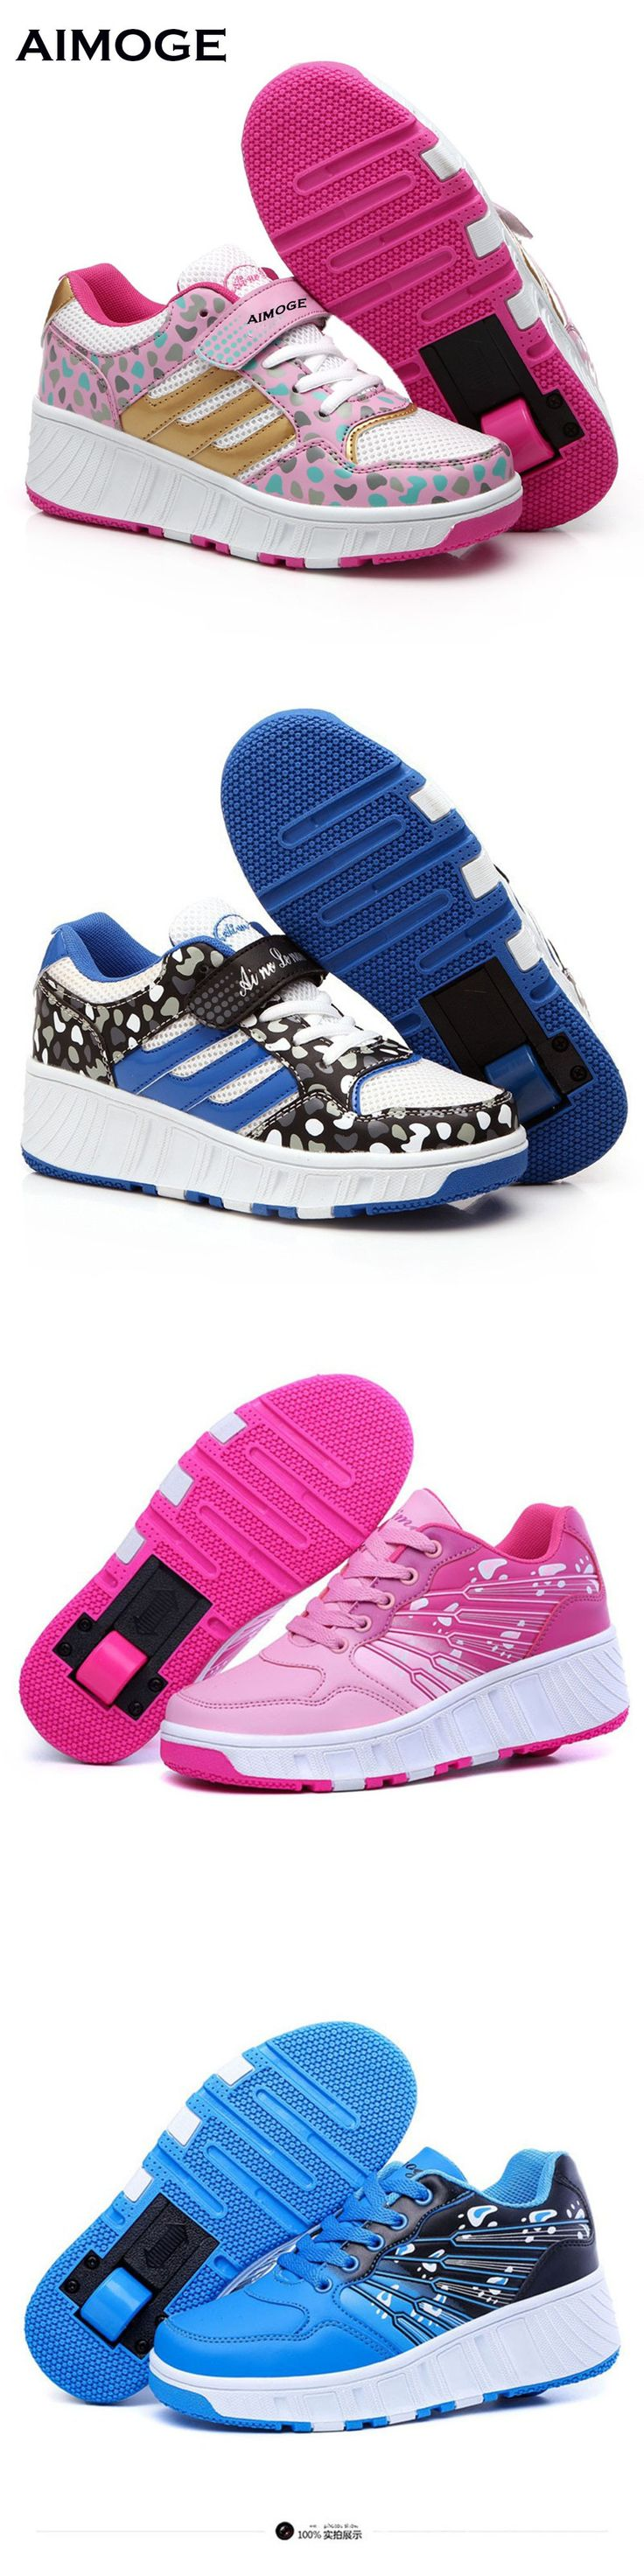 Roller shoes london - New 2016 Child Shoes Summer Style Breathable Wheelys Roller Skate Shoes For Girls Kids Boys Sneakers With One Wheels Pink Blue